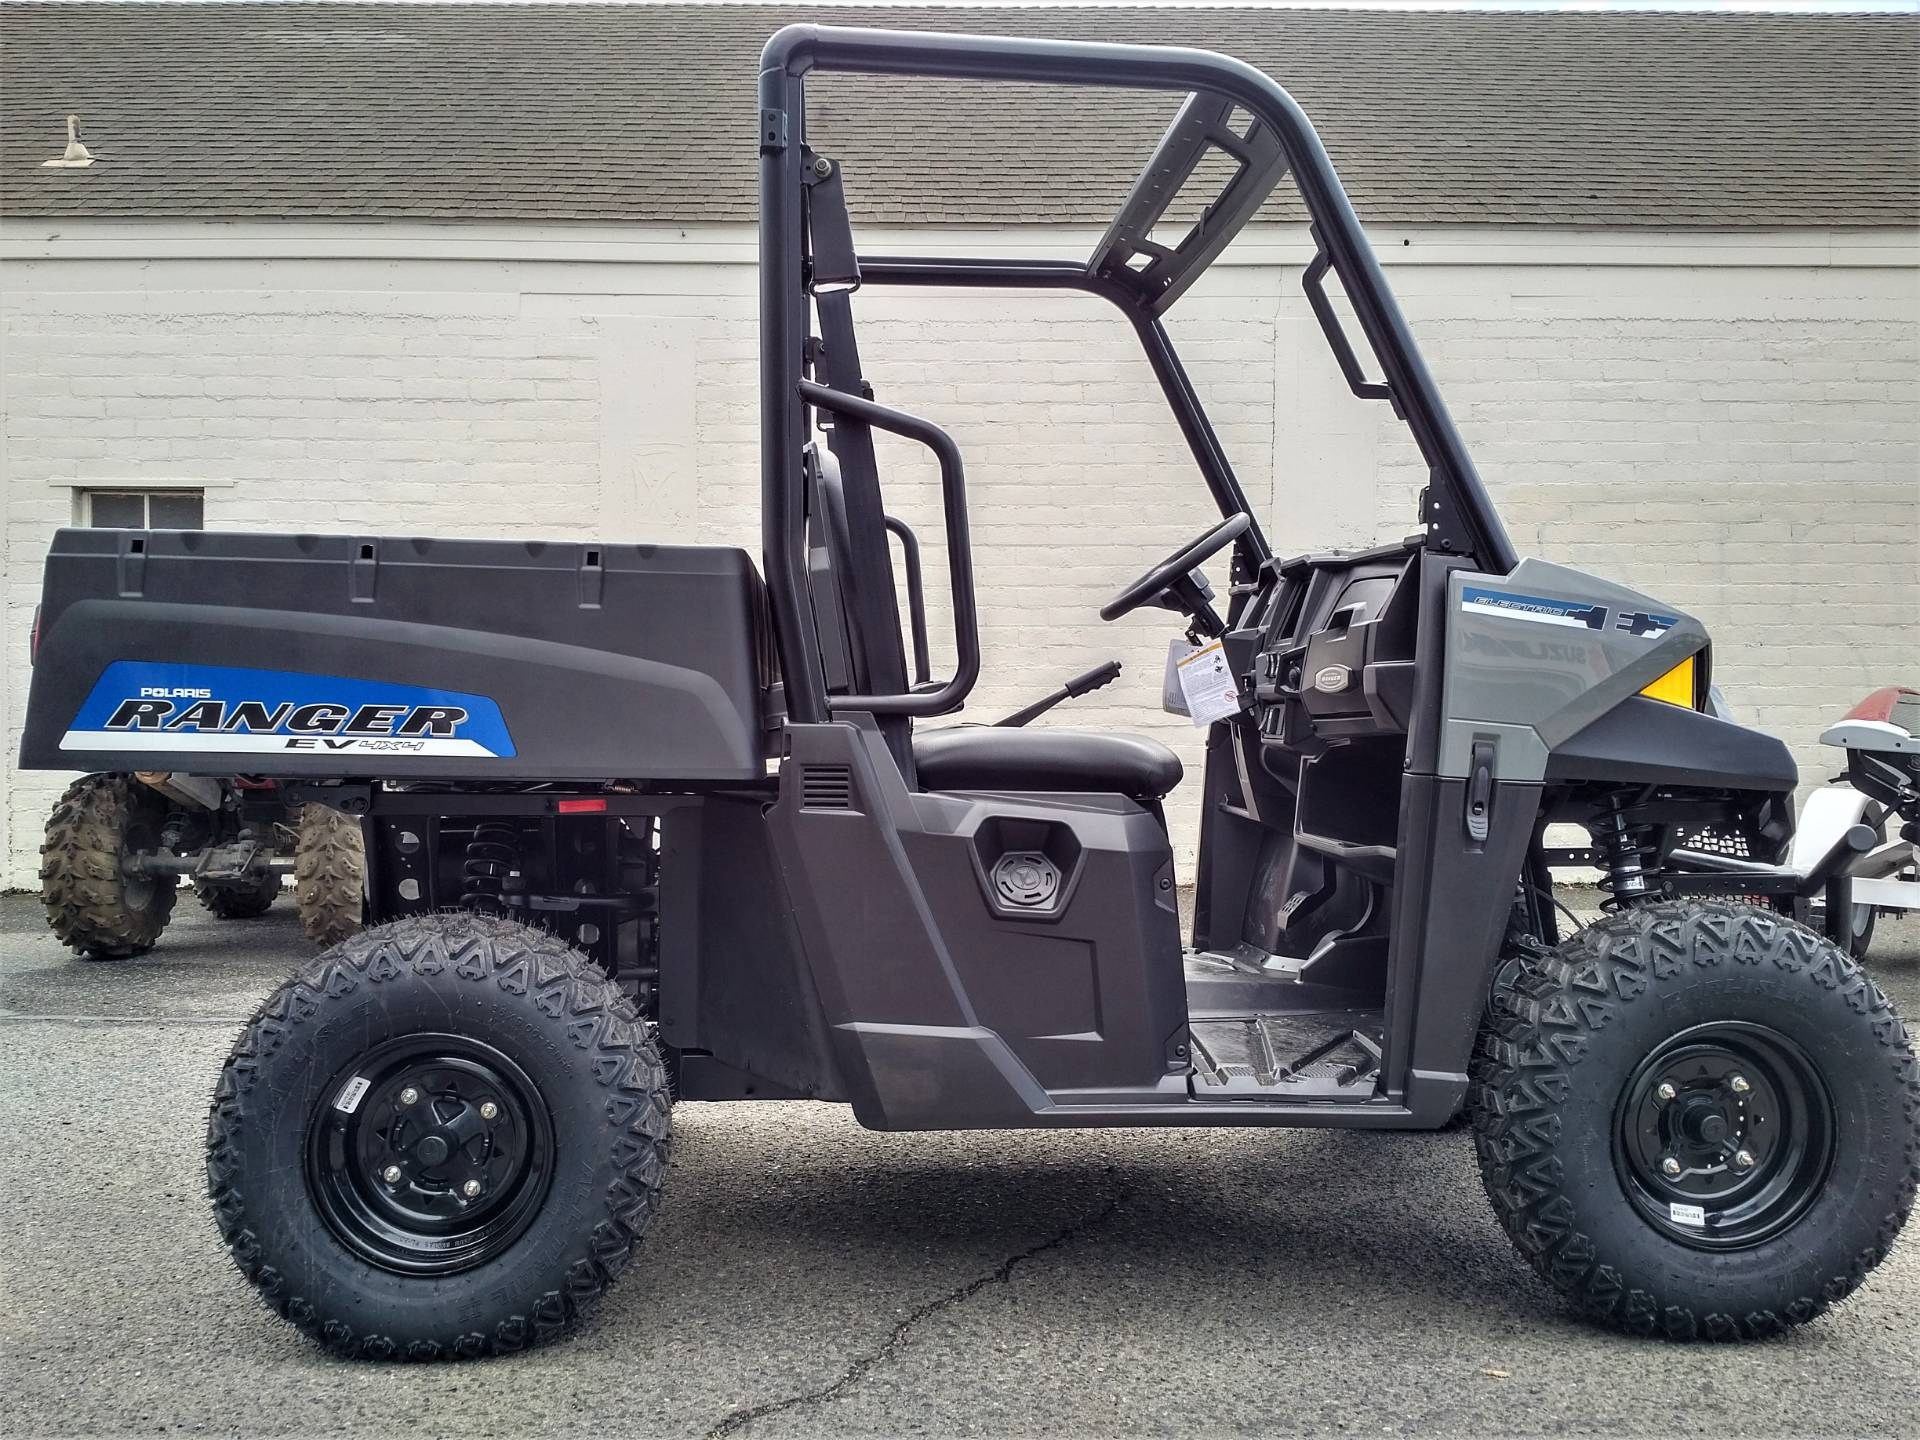 2019 Polaris Ranger Ev In Salinas California Photo 1